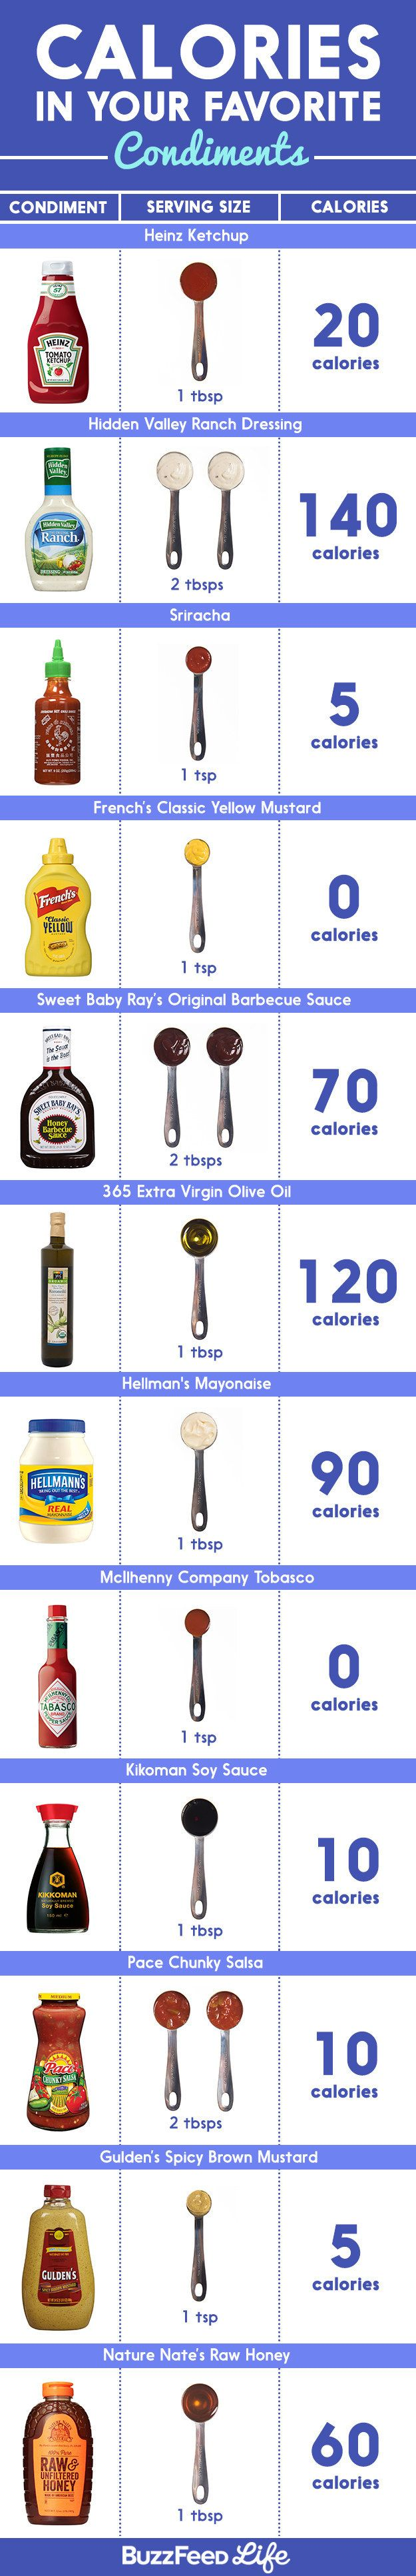 And most condiments have calories, too.